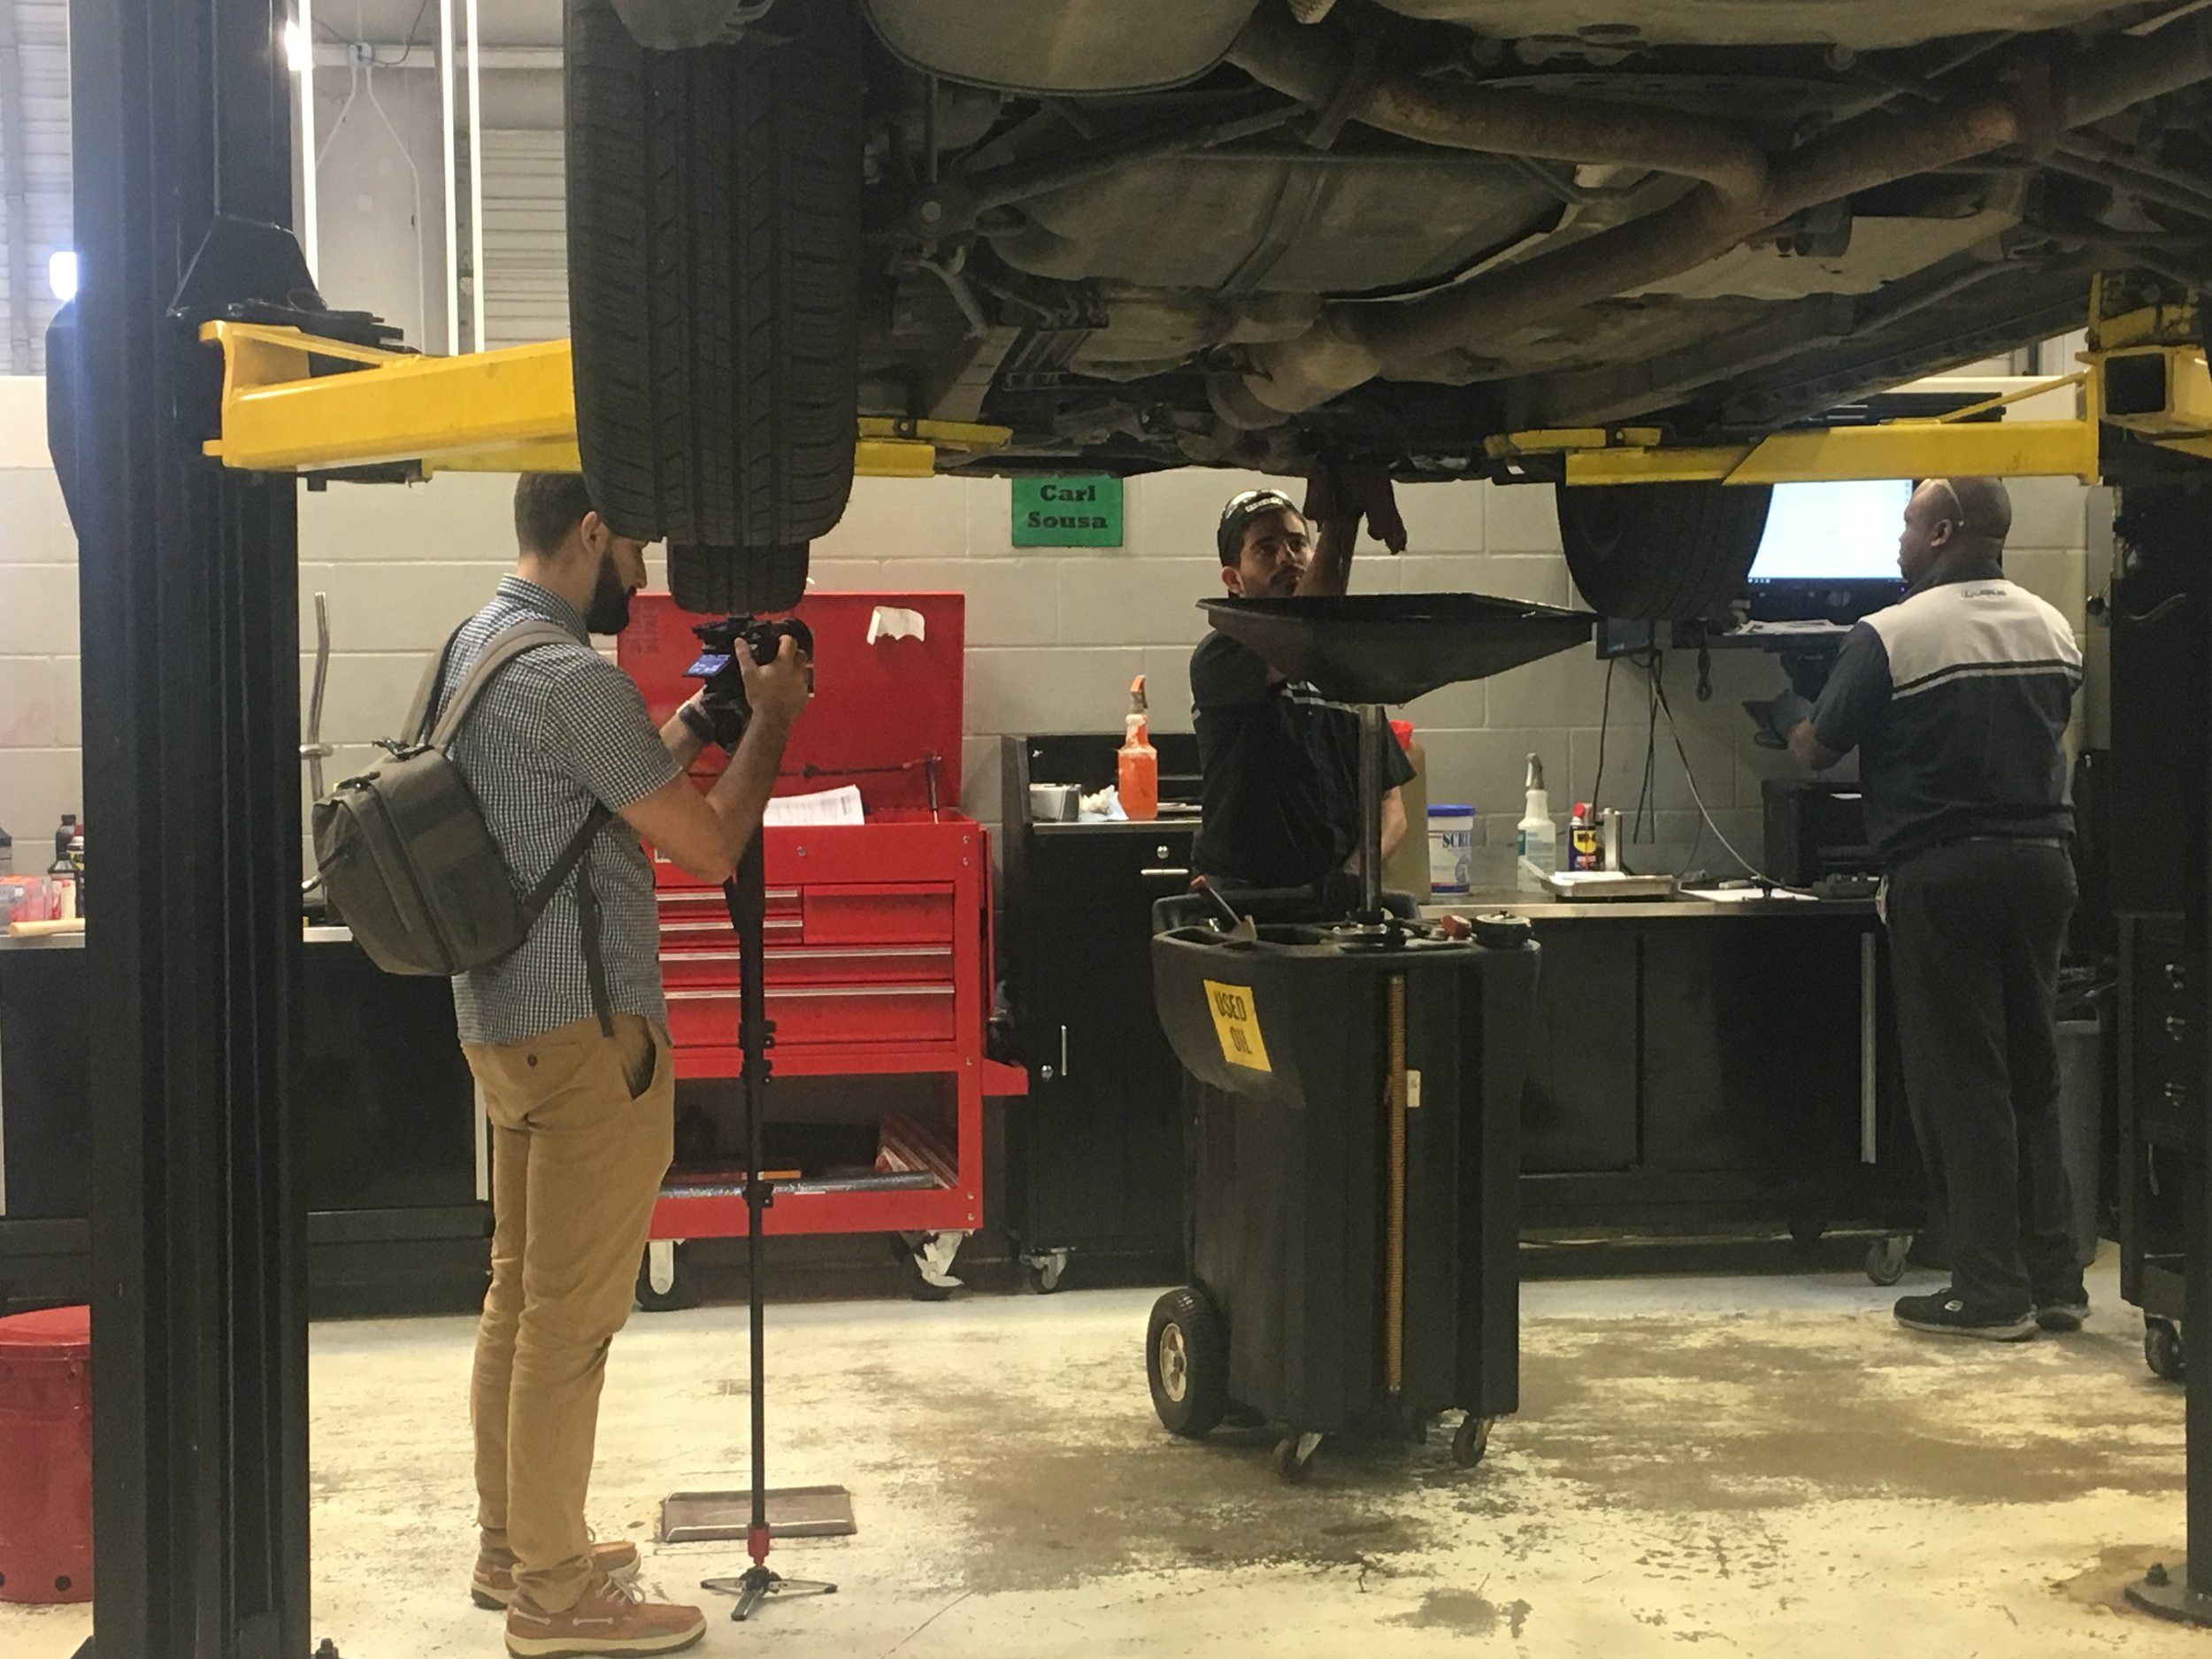 Behind the scenes! At brand28, we love capturing the culture of an organization. Shown is our video ninja getting down and dirty with the Group 1 Automotive mechanic crew.